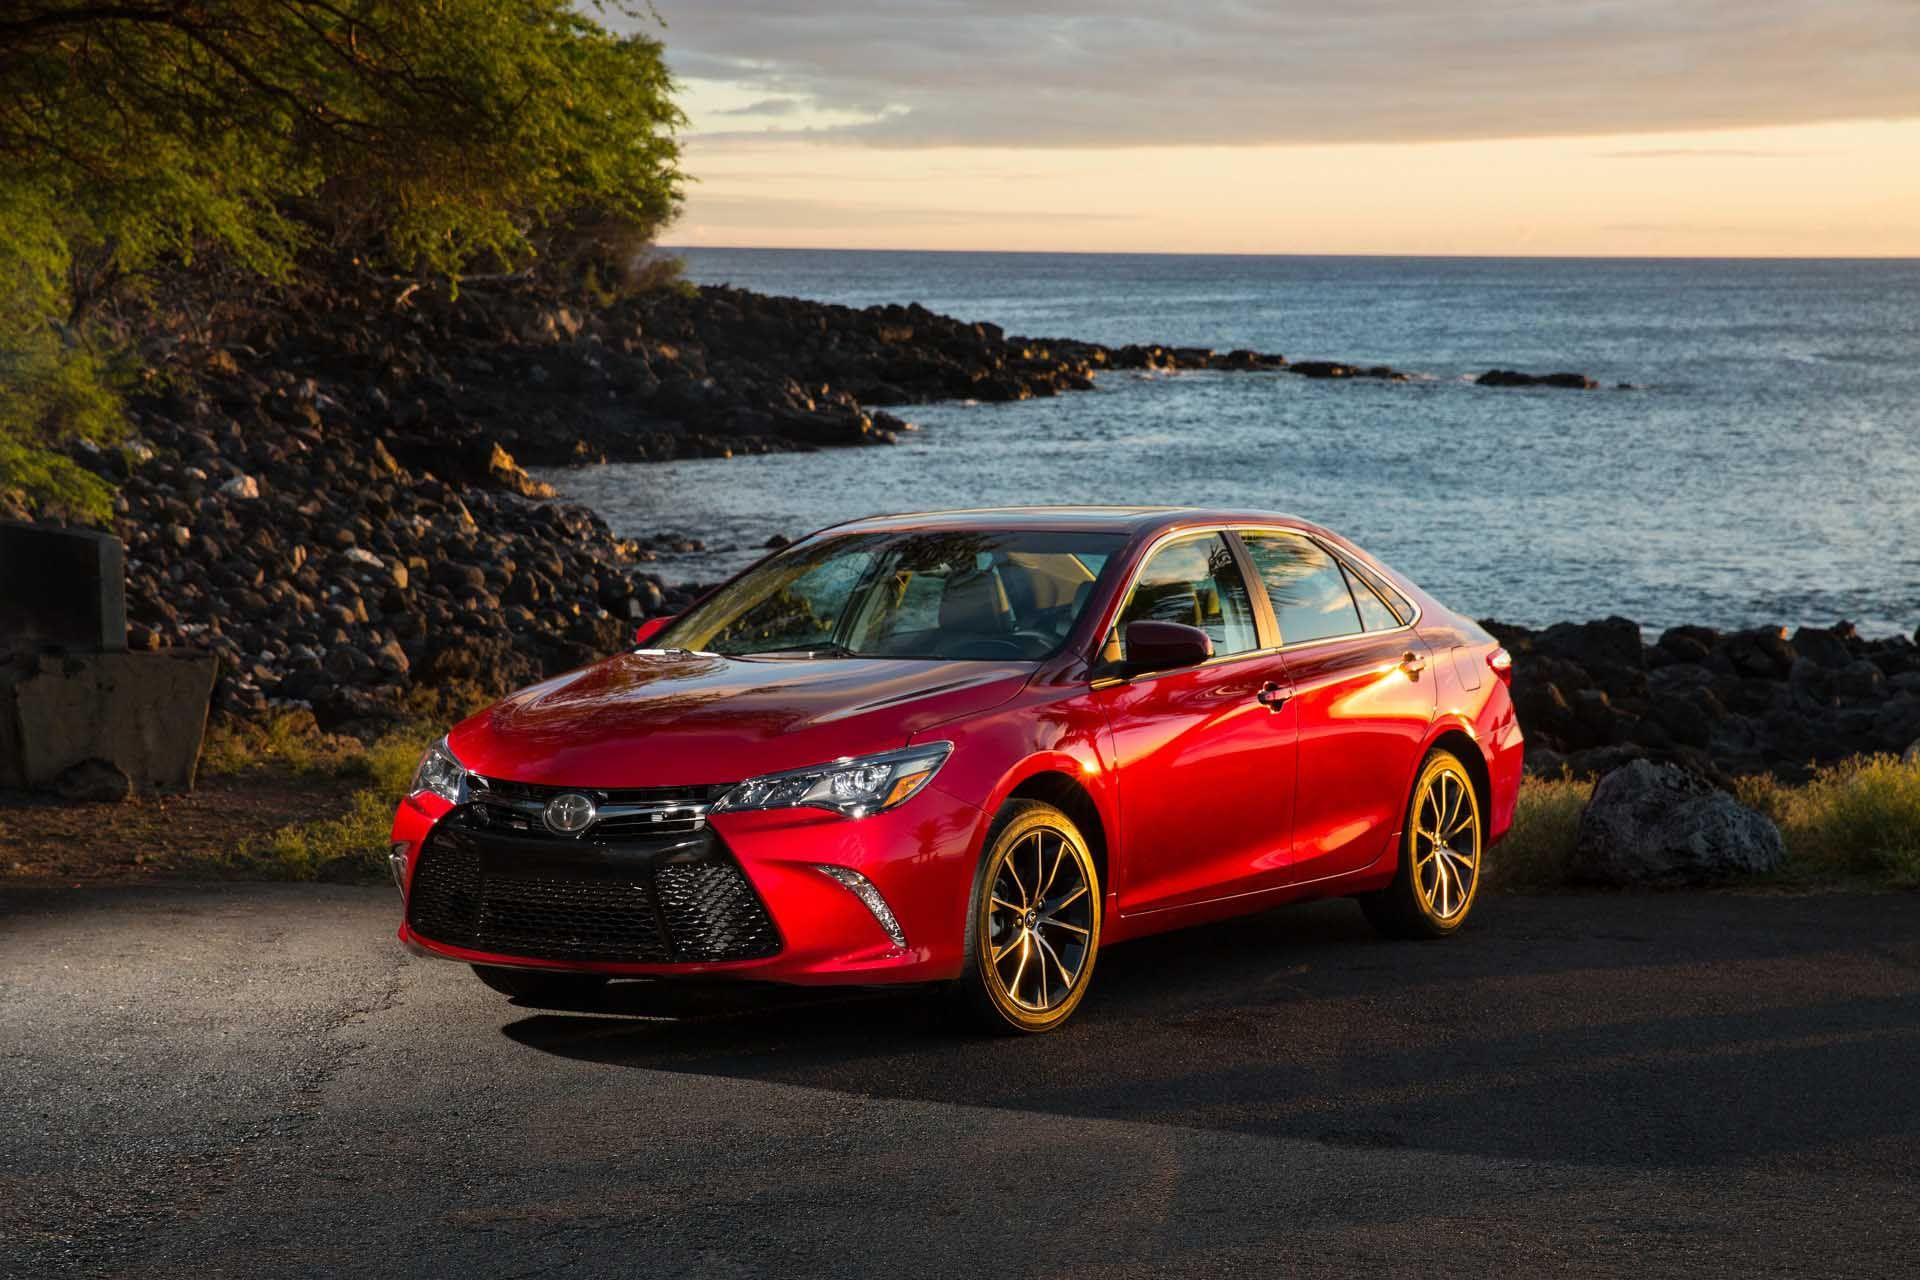 10 Beautiful 2015 Toyota Camry XLE Red Side View Desktop